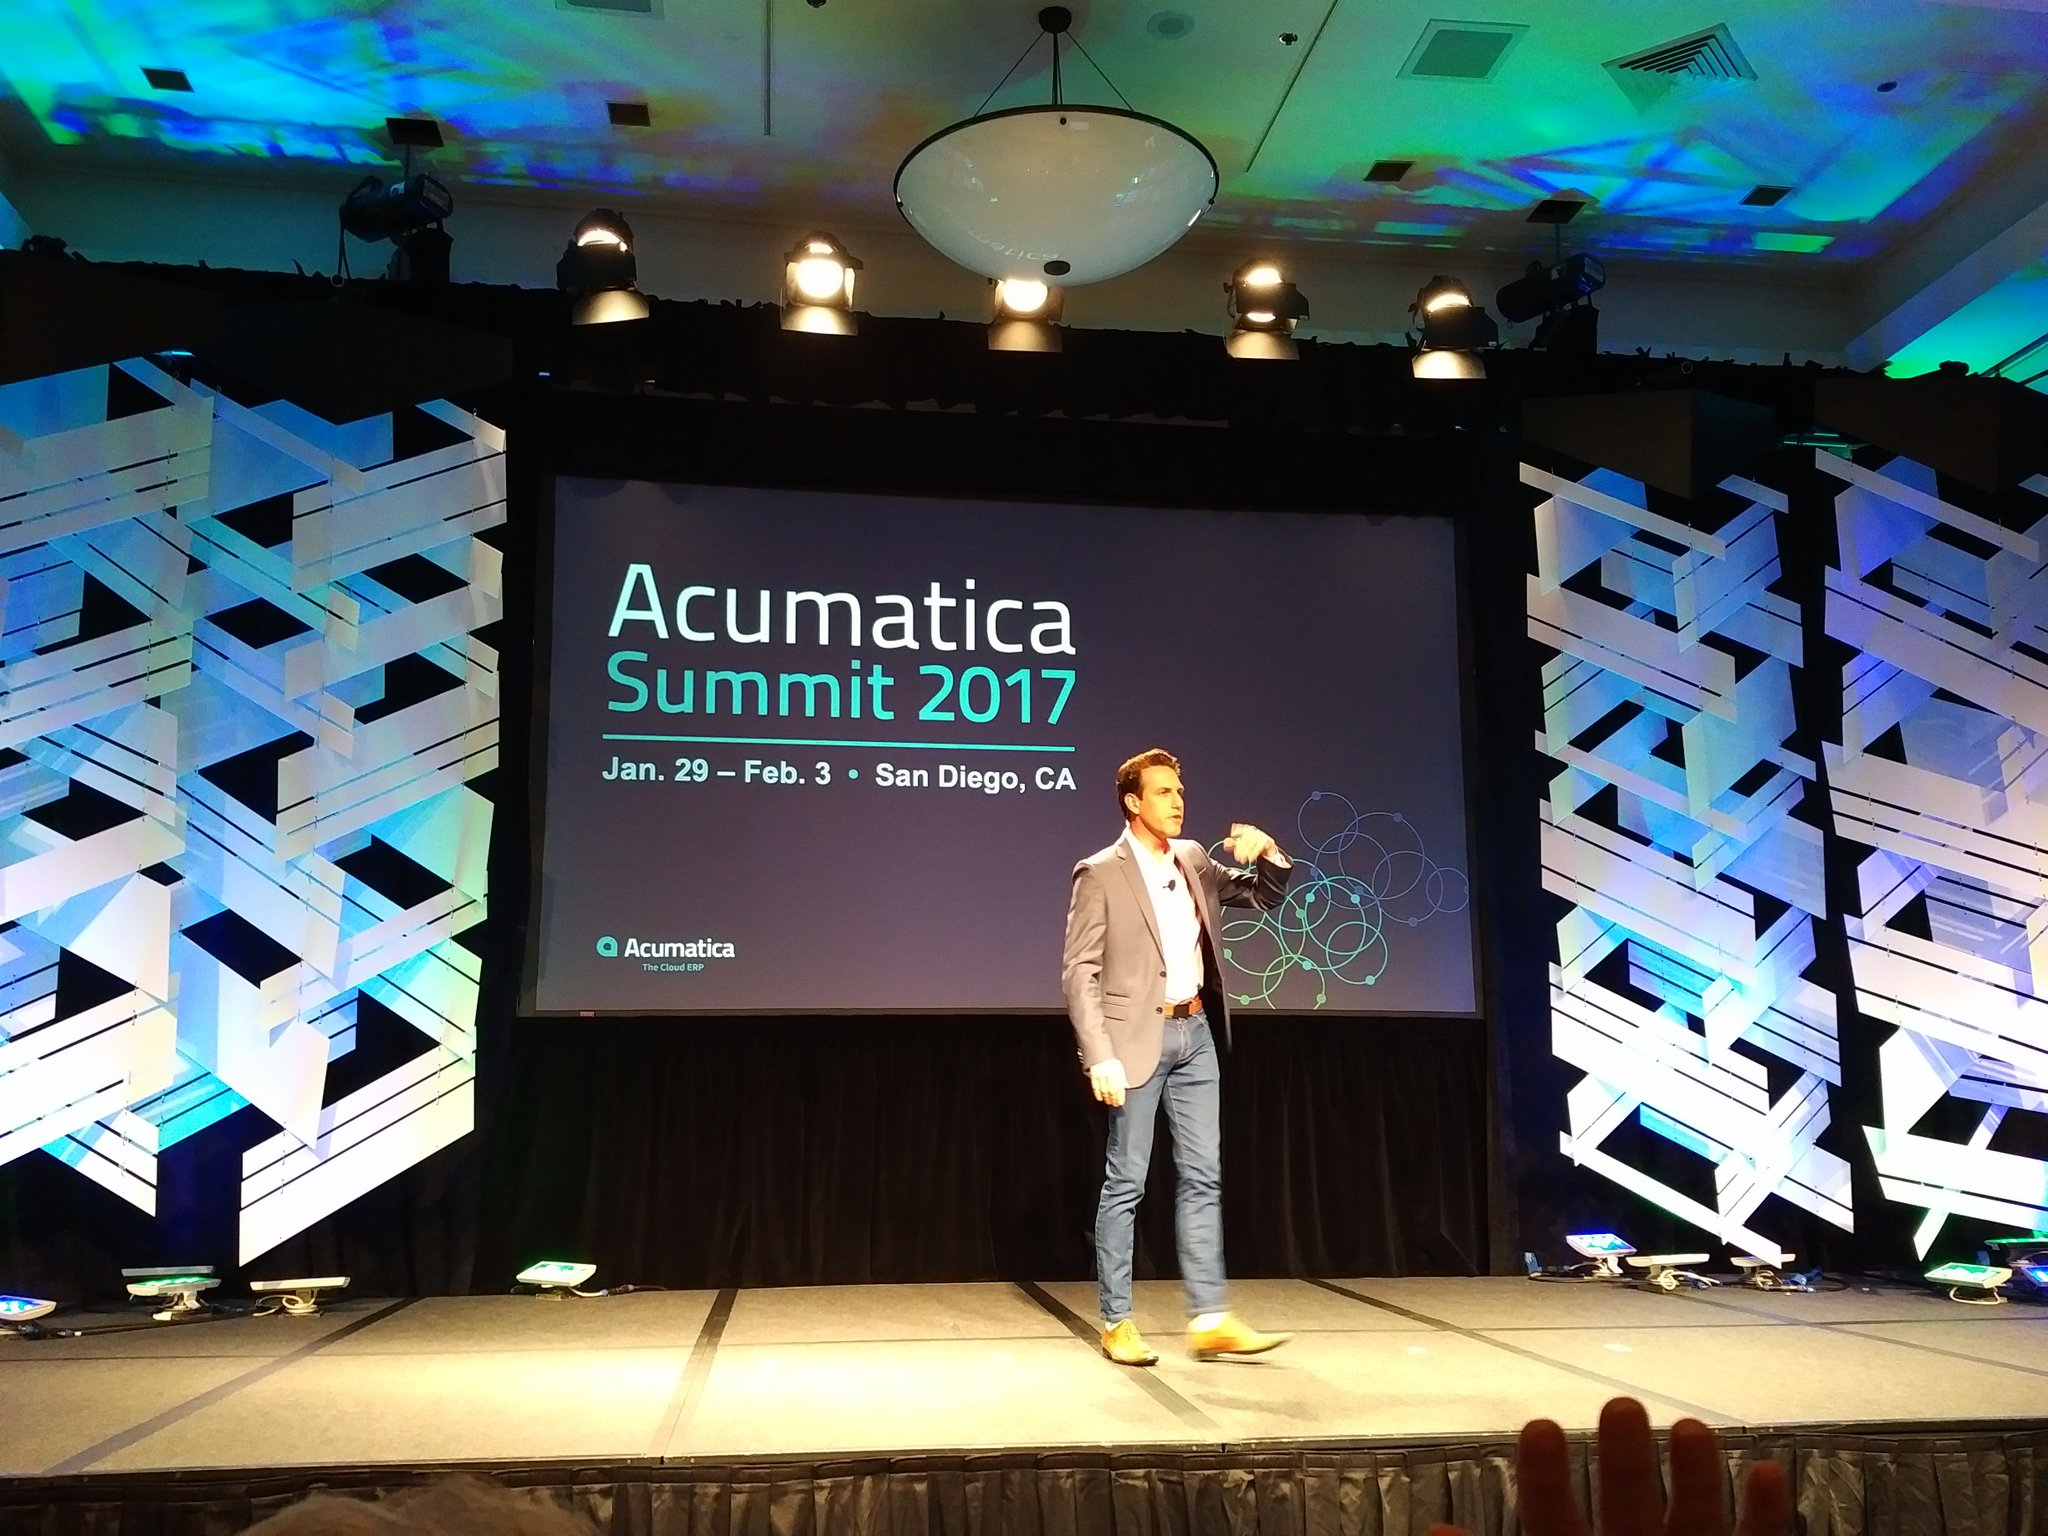 And we are off at #AcumaticaSummit with local news reporter ... summons the audience. https://t.co/jjFkEIZL6K